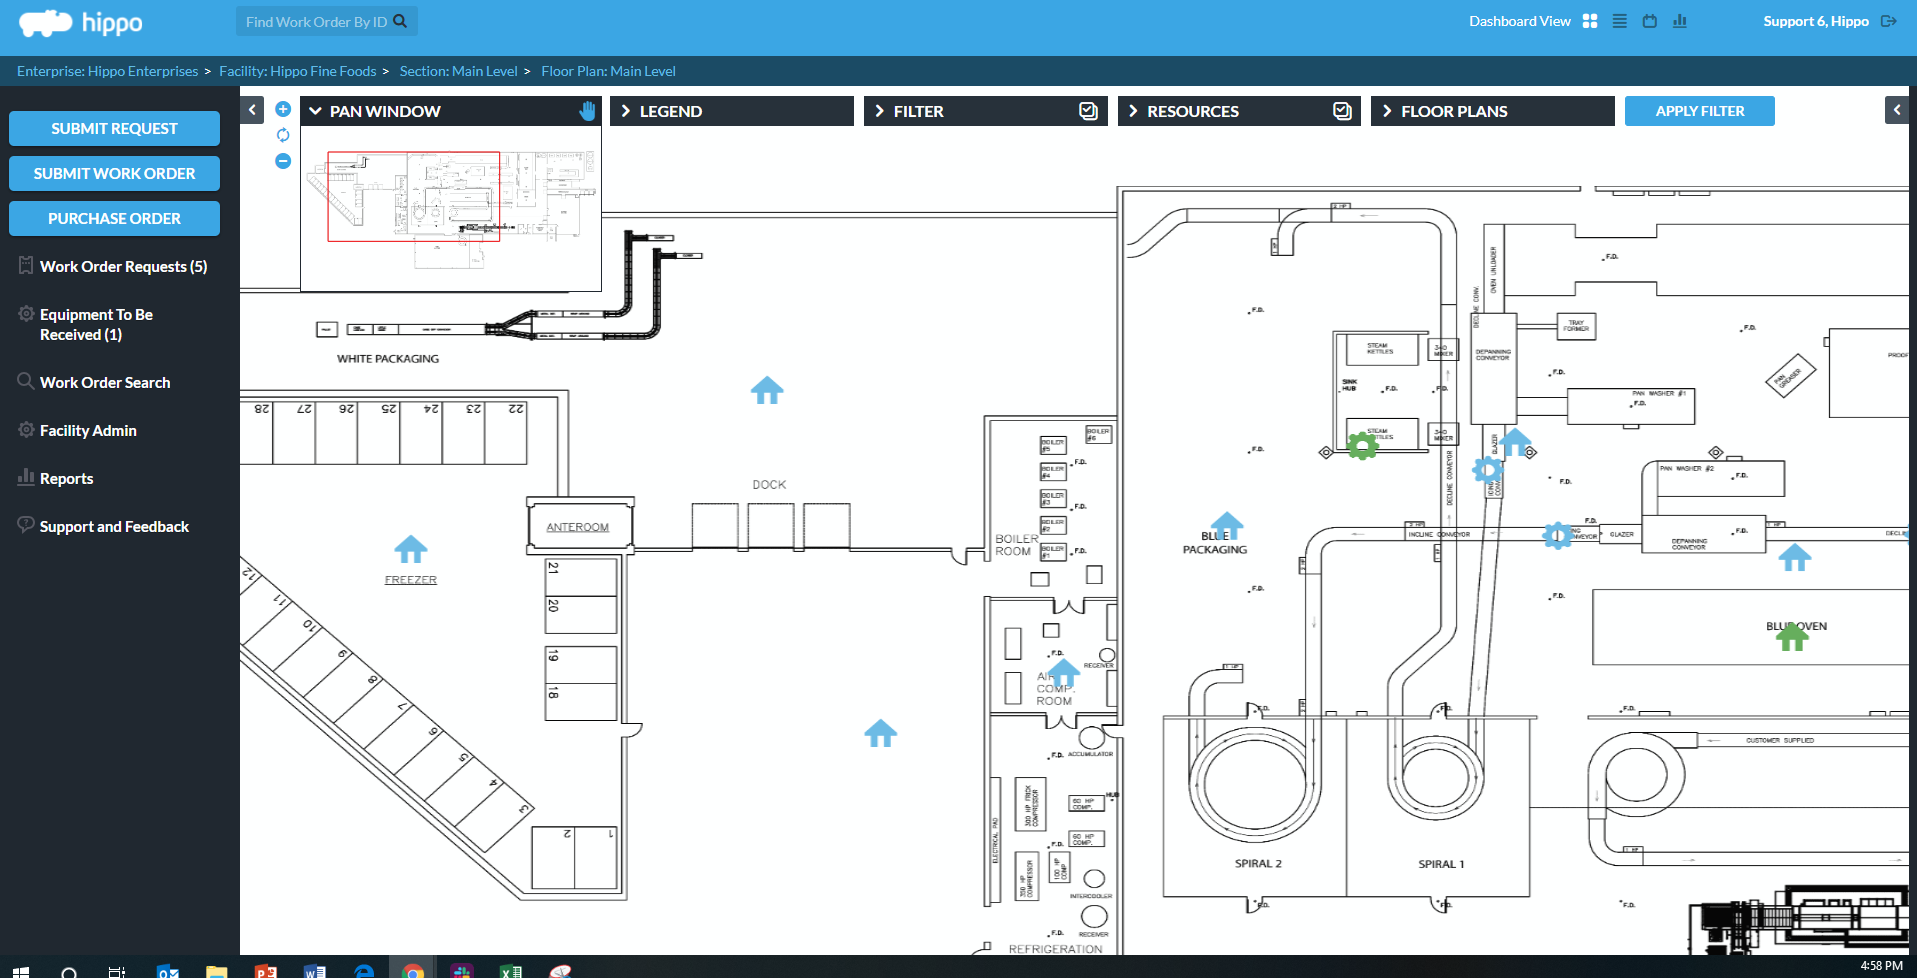 Hippo CMMS Software - Interactive Plans Maps